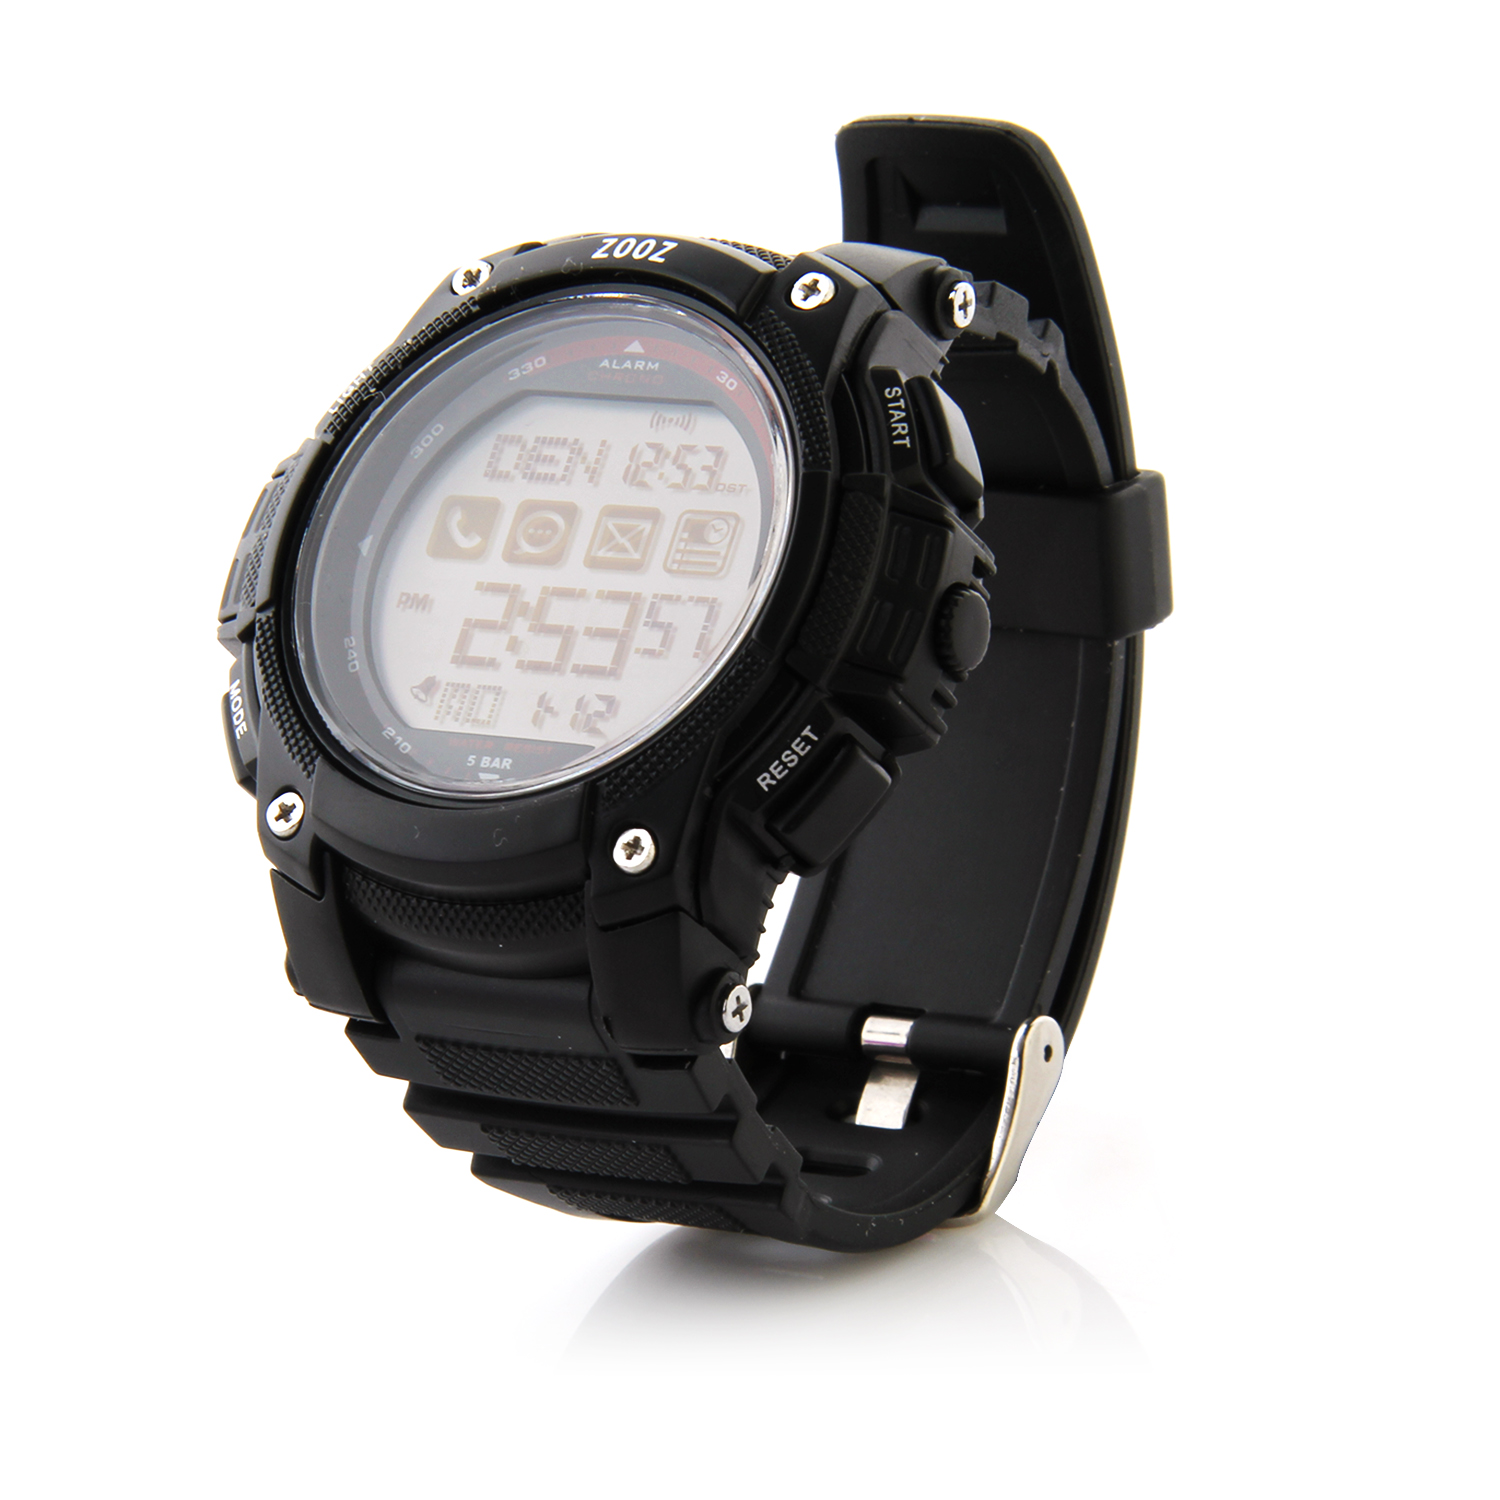 ZOOZ J1 IP68 Bluetooth Watch with Call SMS Sync Function for Android iOS Phone Black